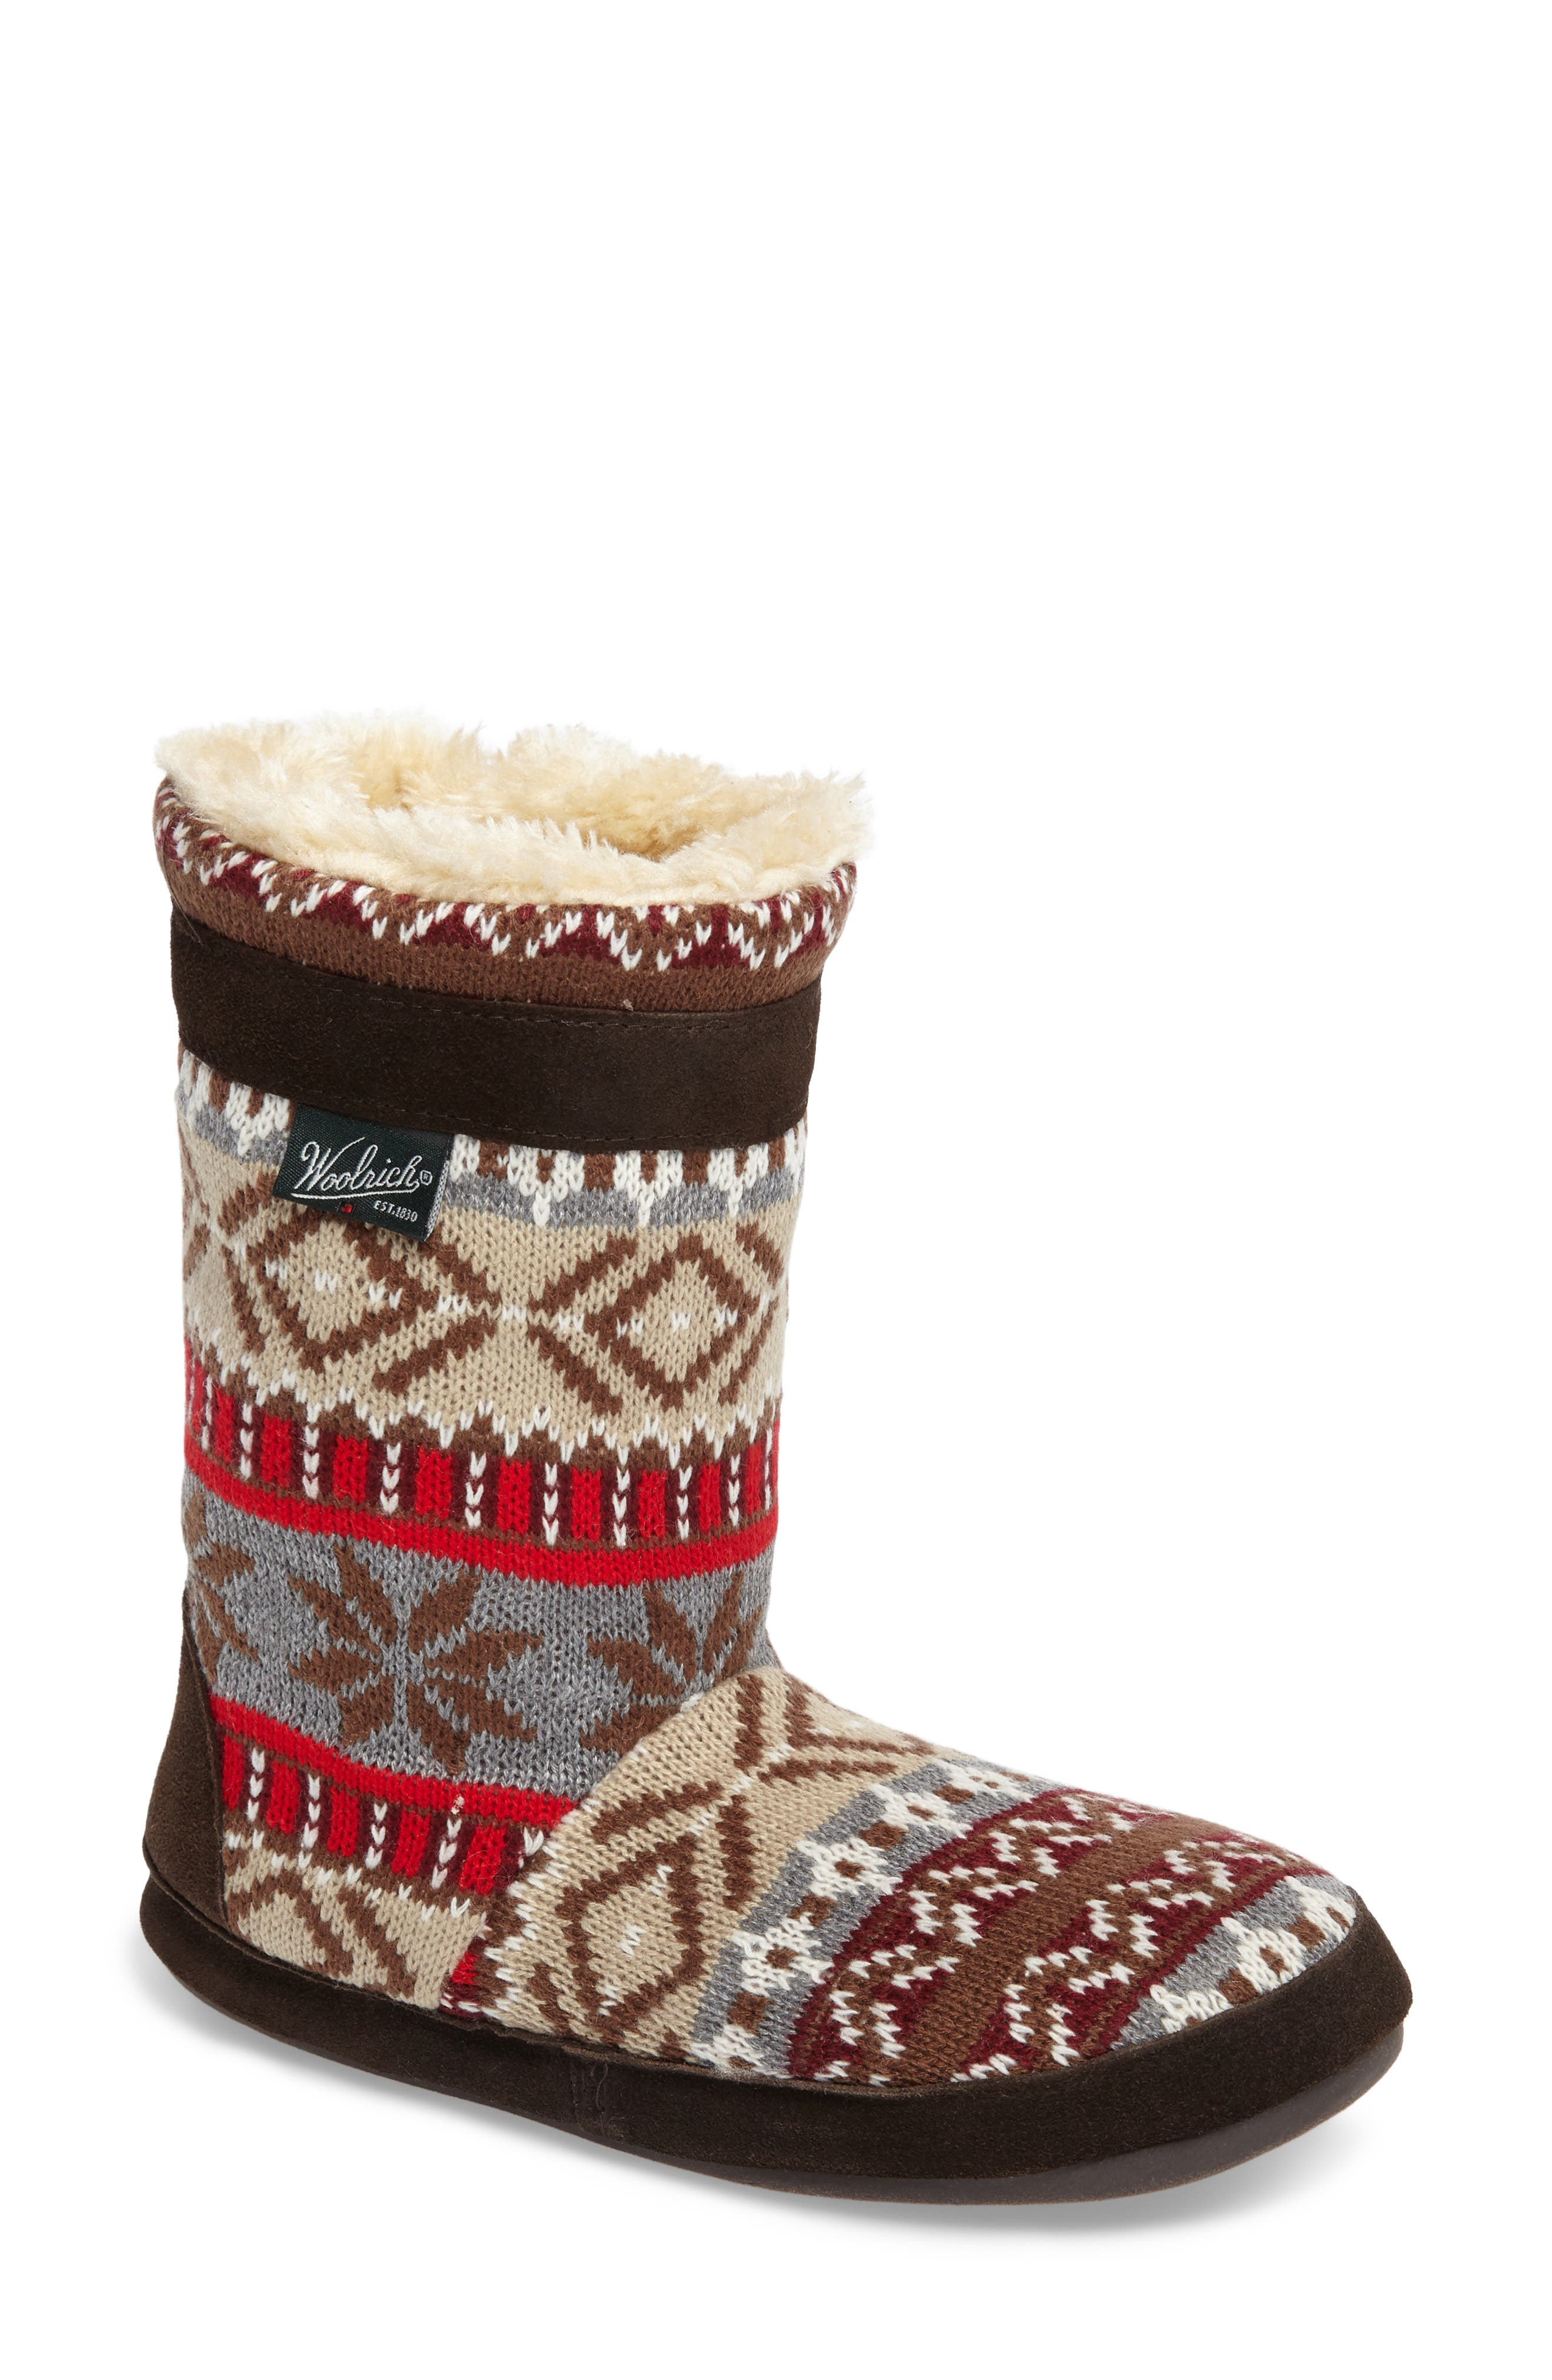 Main Image - Woolrich Whitecap Knit Slipper Bootie (Women)